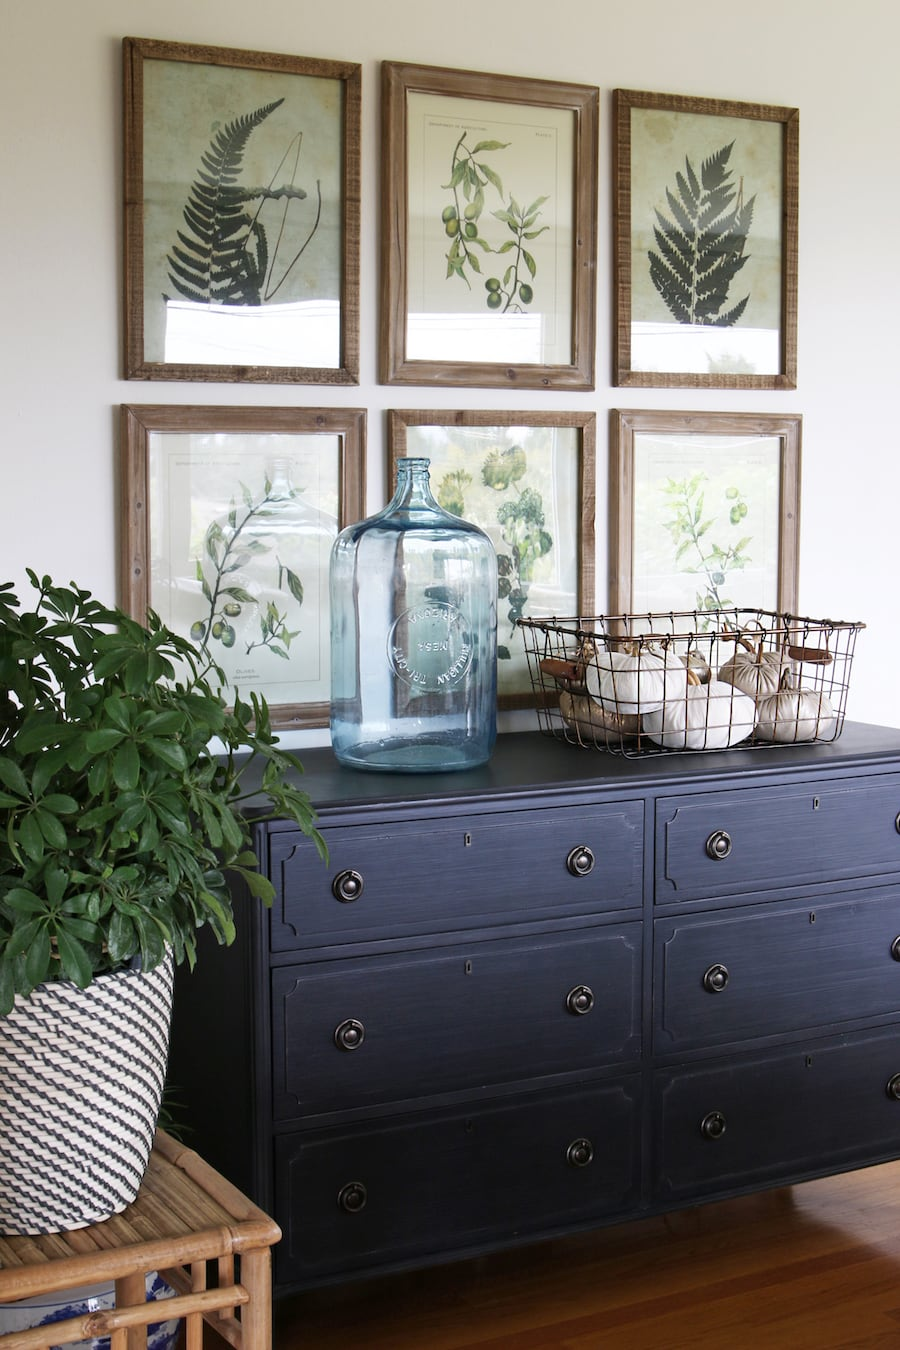 Art sources for beautiful botanicals the inspired room - fall house tour